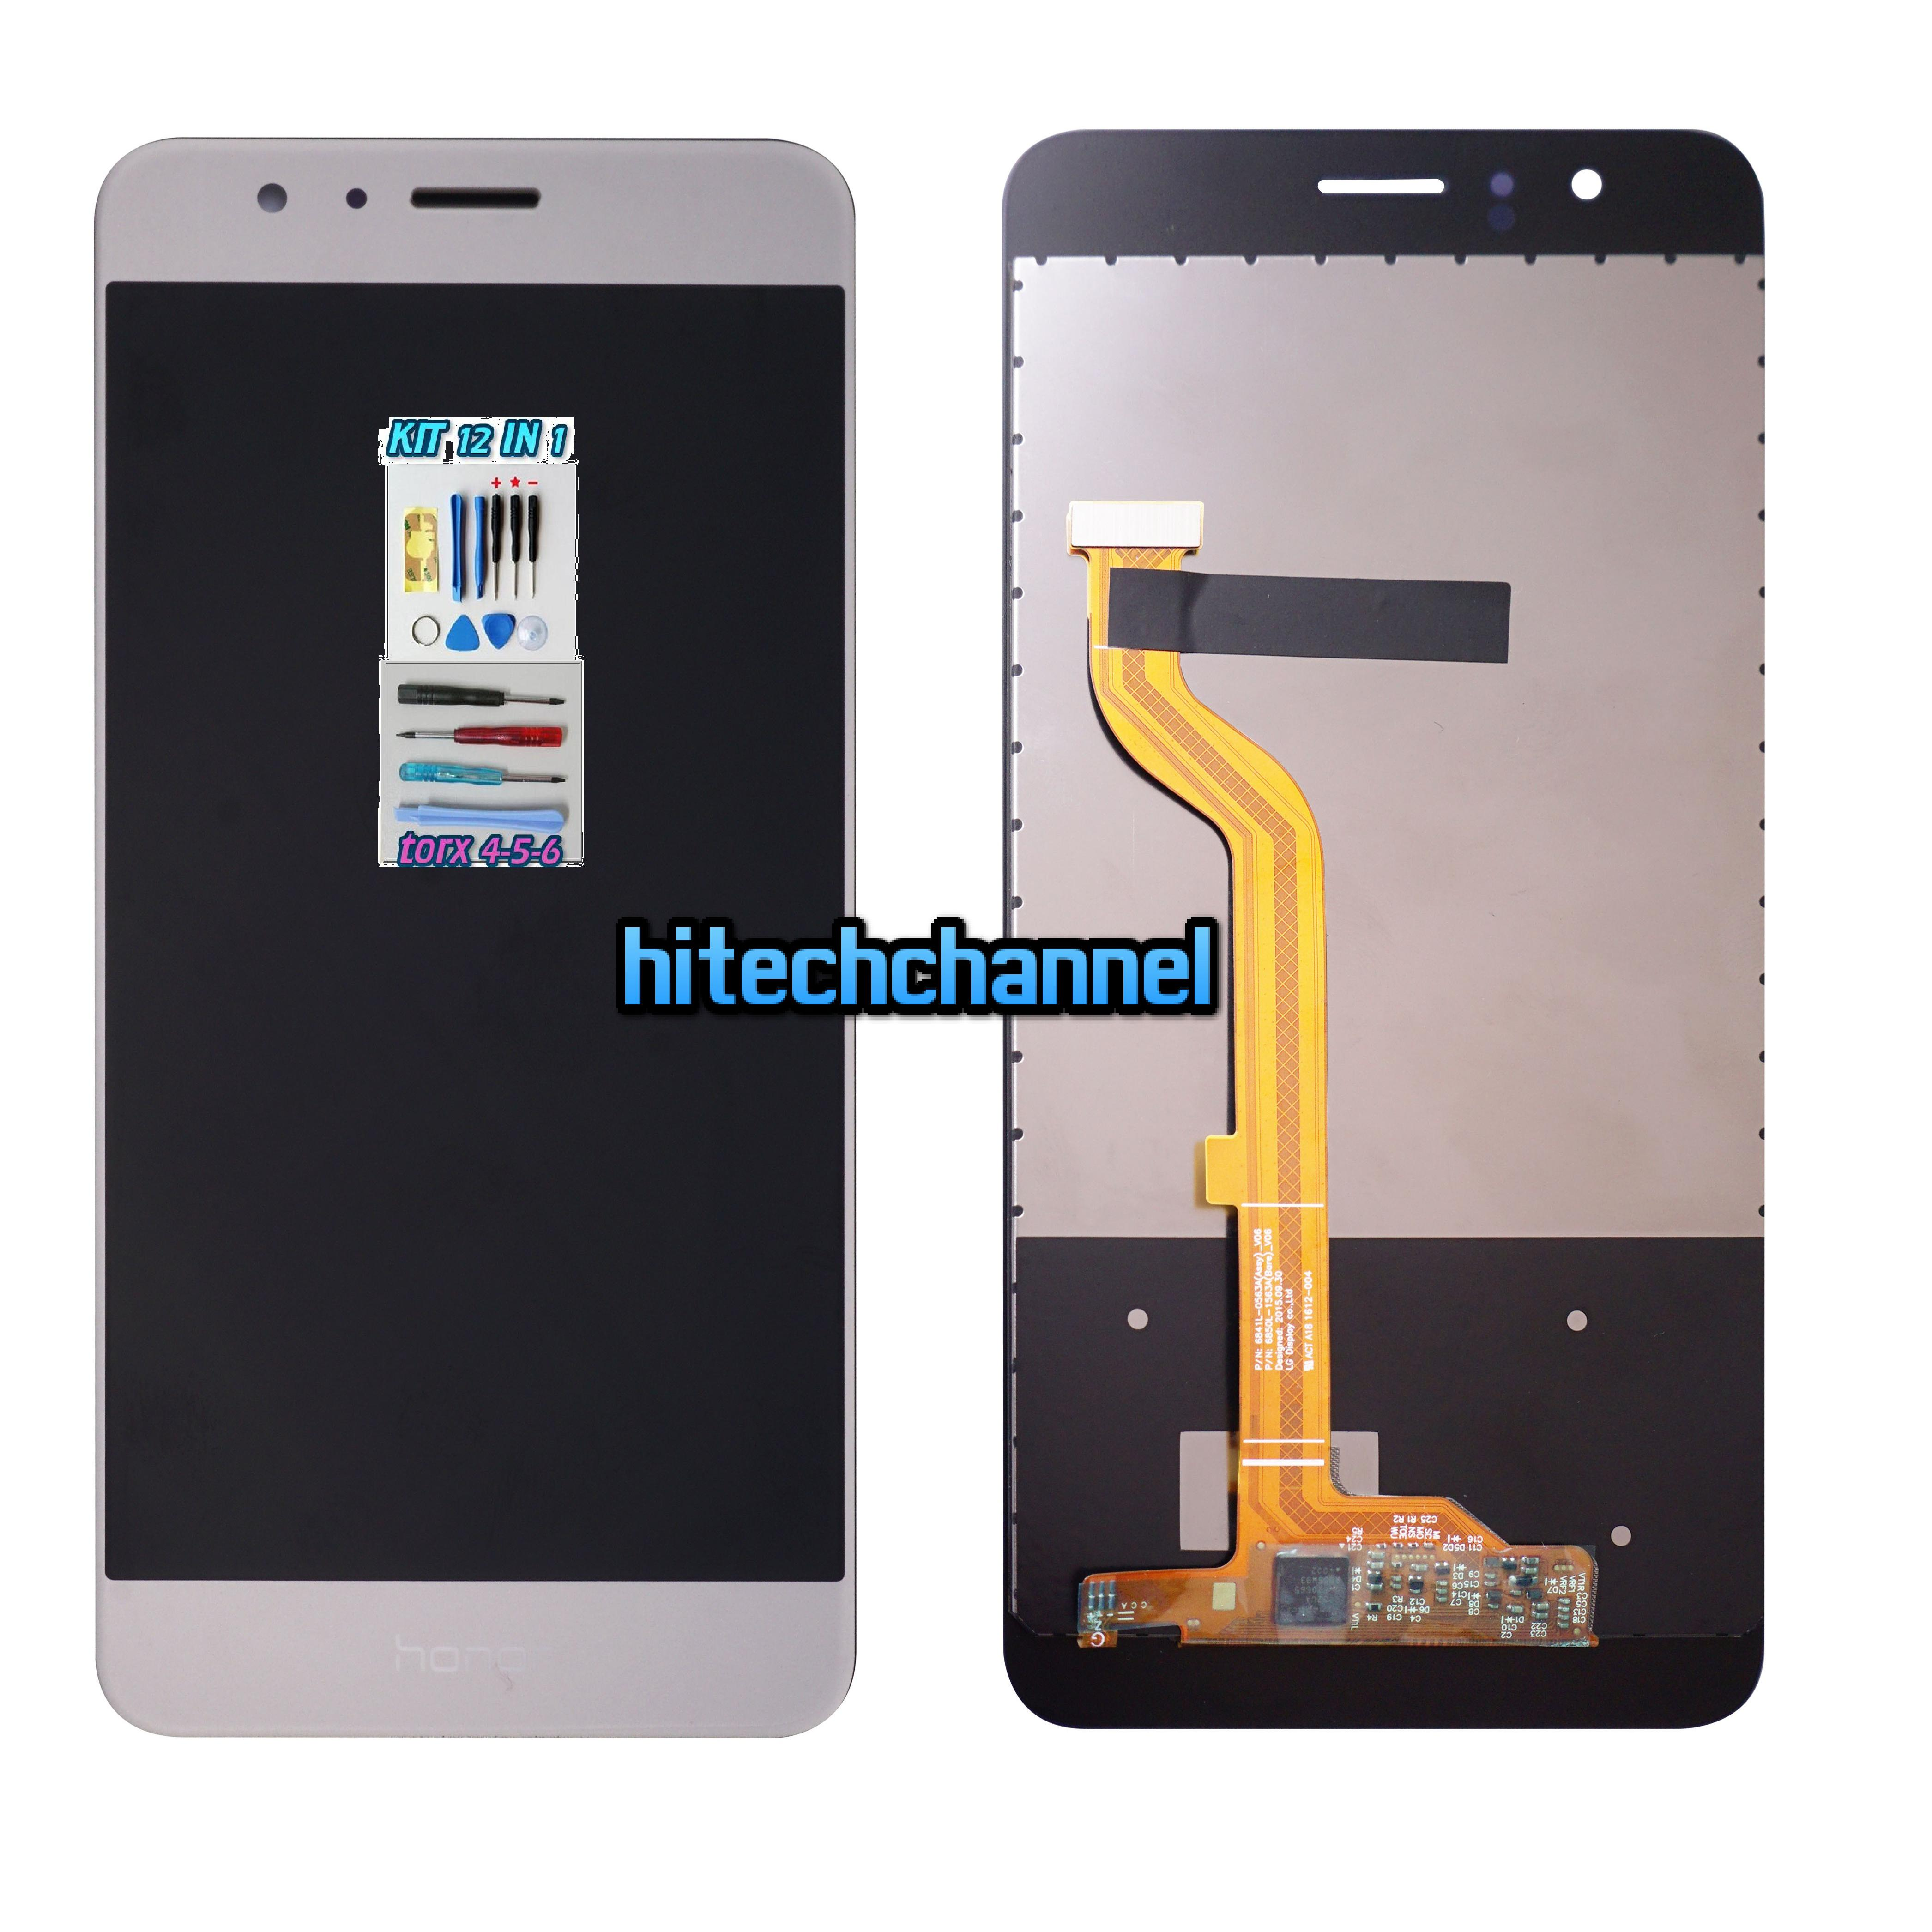 LCD DISPLAY TOUCH SCREEN ORIGINALE Per HUAWEI HONOR 8 ORO GOLD FDR-L09+ kit 9 in 1+biadesivo